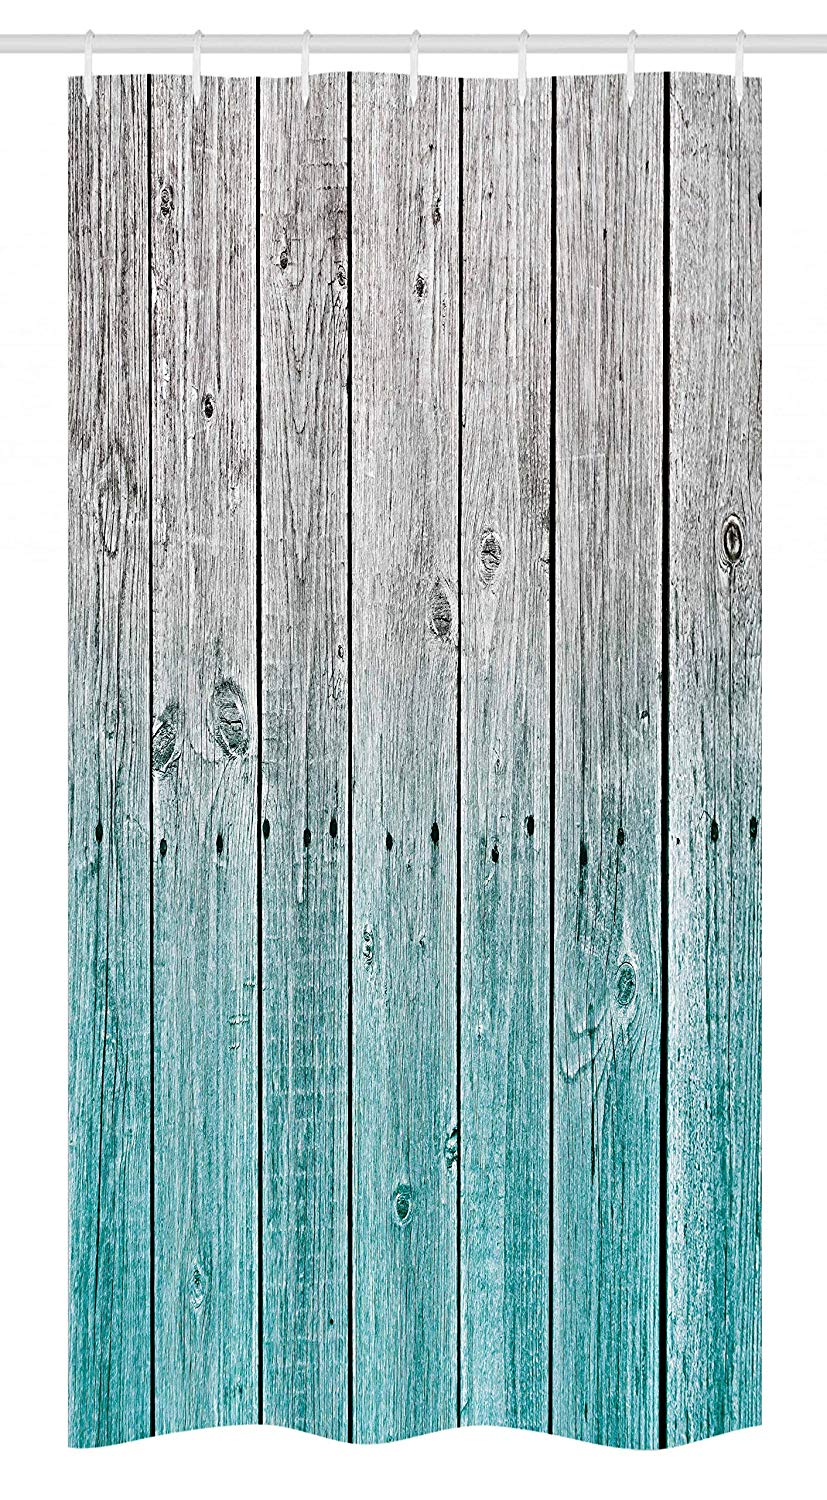 "Ambesonne Rustic Stall Shower Curtain, Wood Panels Background with Digital Tones Effect Country House Art Image, Fabric Bathroom Decor Set with Hooks, 36"" X 72"", Teal Grey"